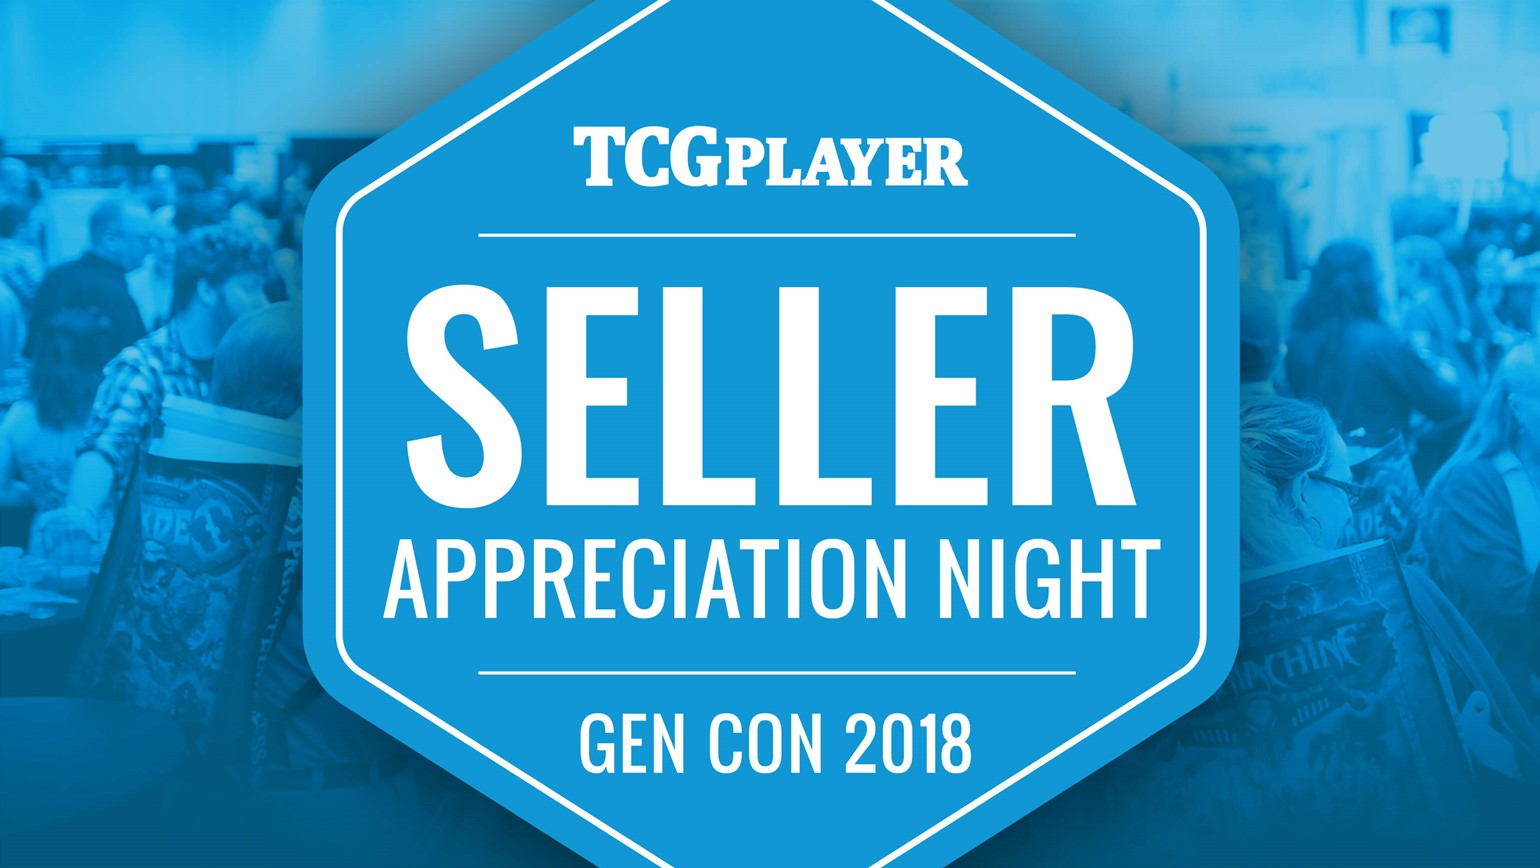 Ready for Gen Con? RSVP for Seller Appreciation Night and Update Your Buylist